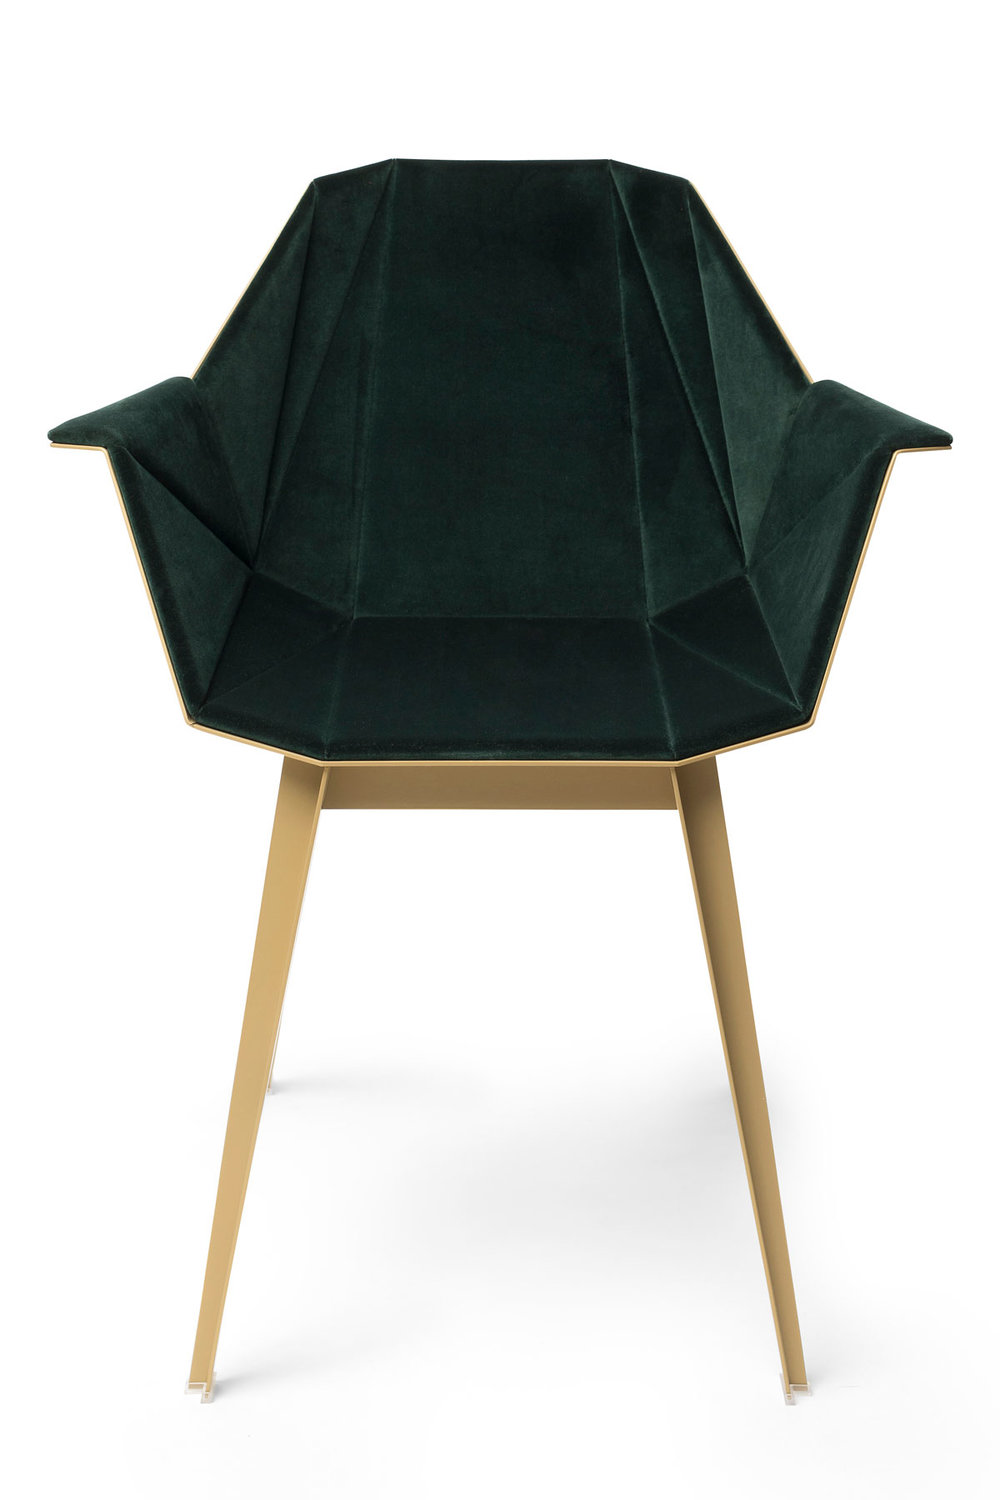 Alumni-Grace-gold-deep-green-upholstered_front.jpg